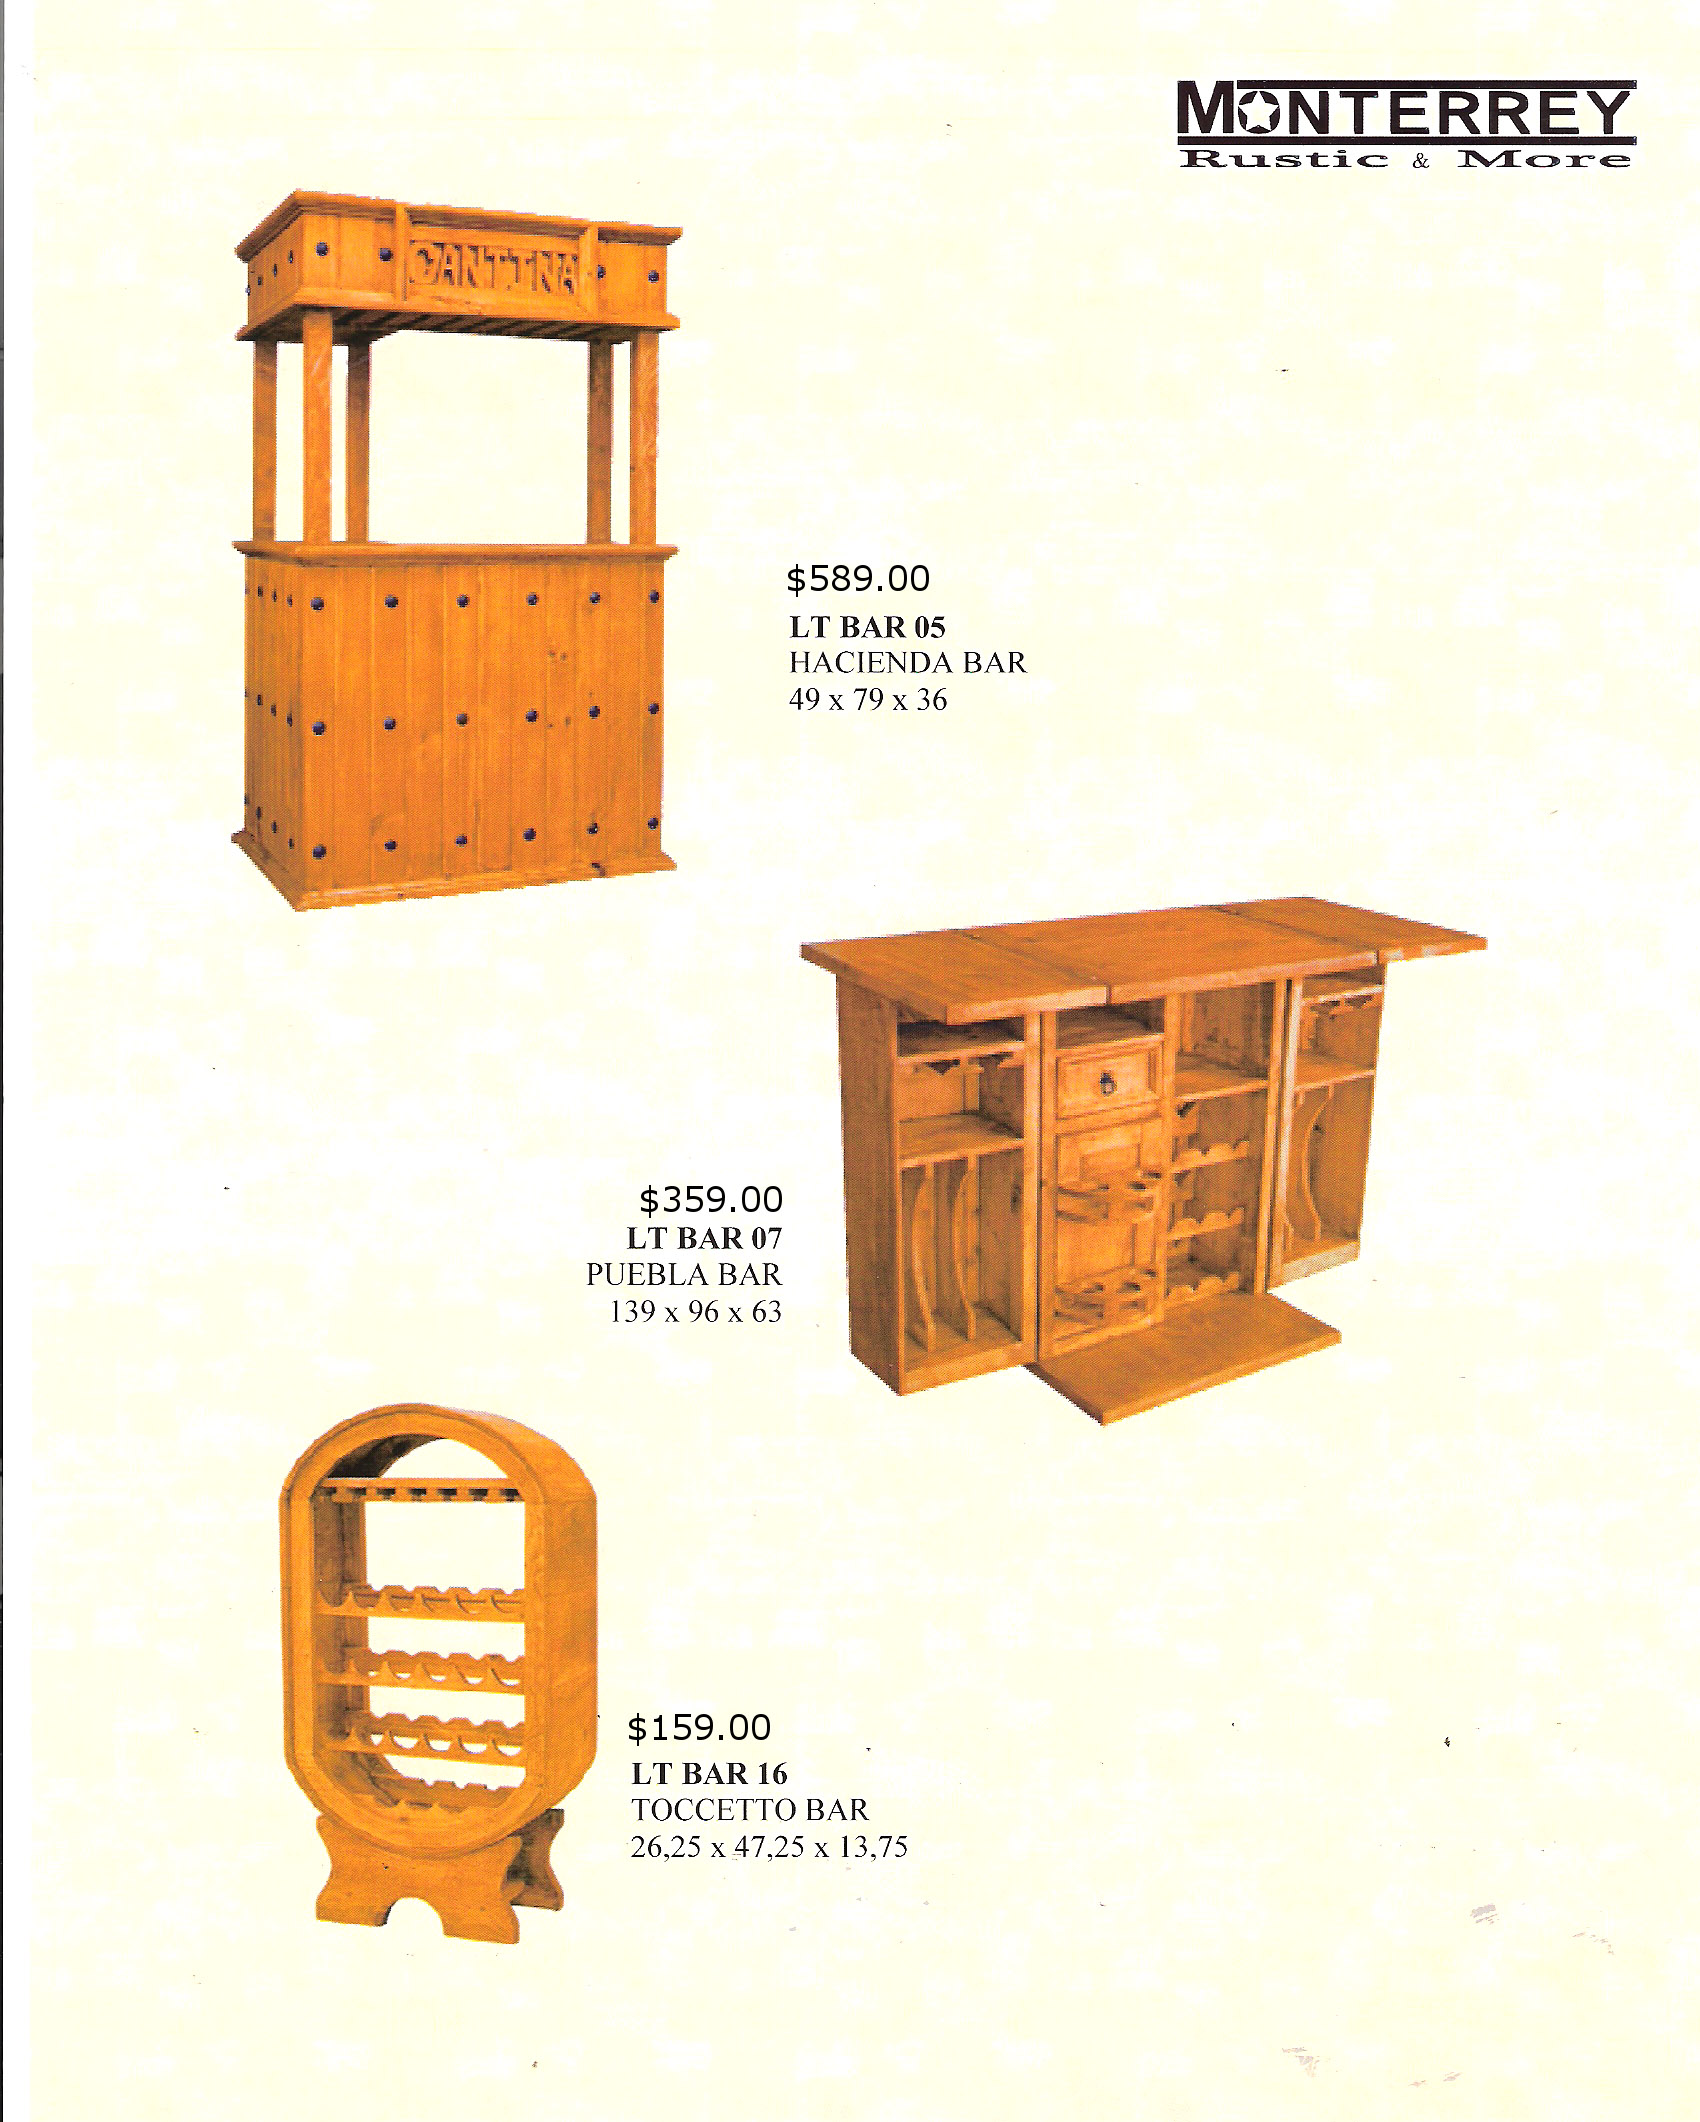 Hacienda Pueblo Tocetto Bars Monterrey Rustic Furniture